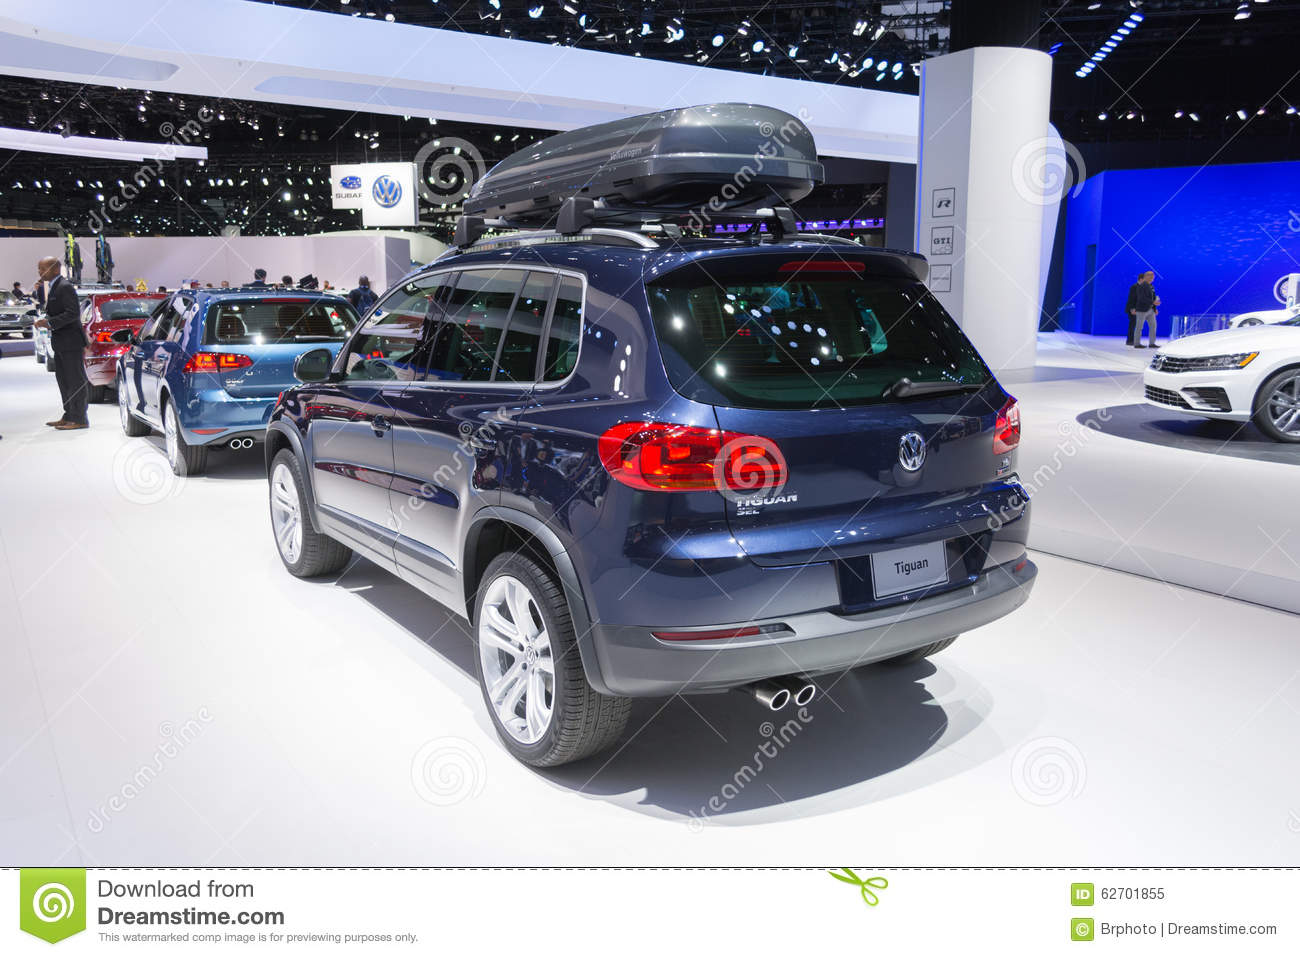 Volkswagen tuguan sel editorial image image 62701855 for Dream motors los angeles